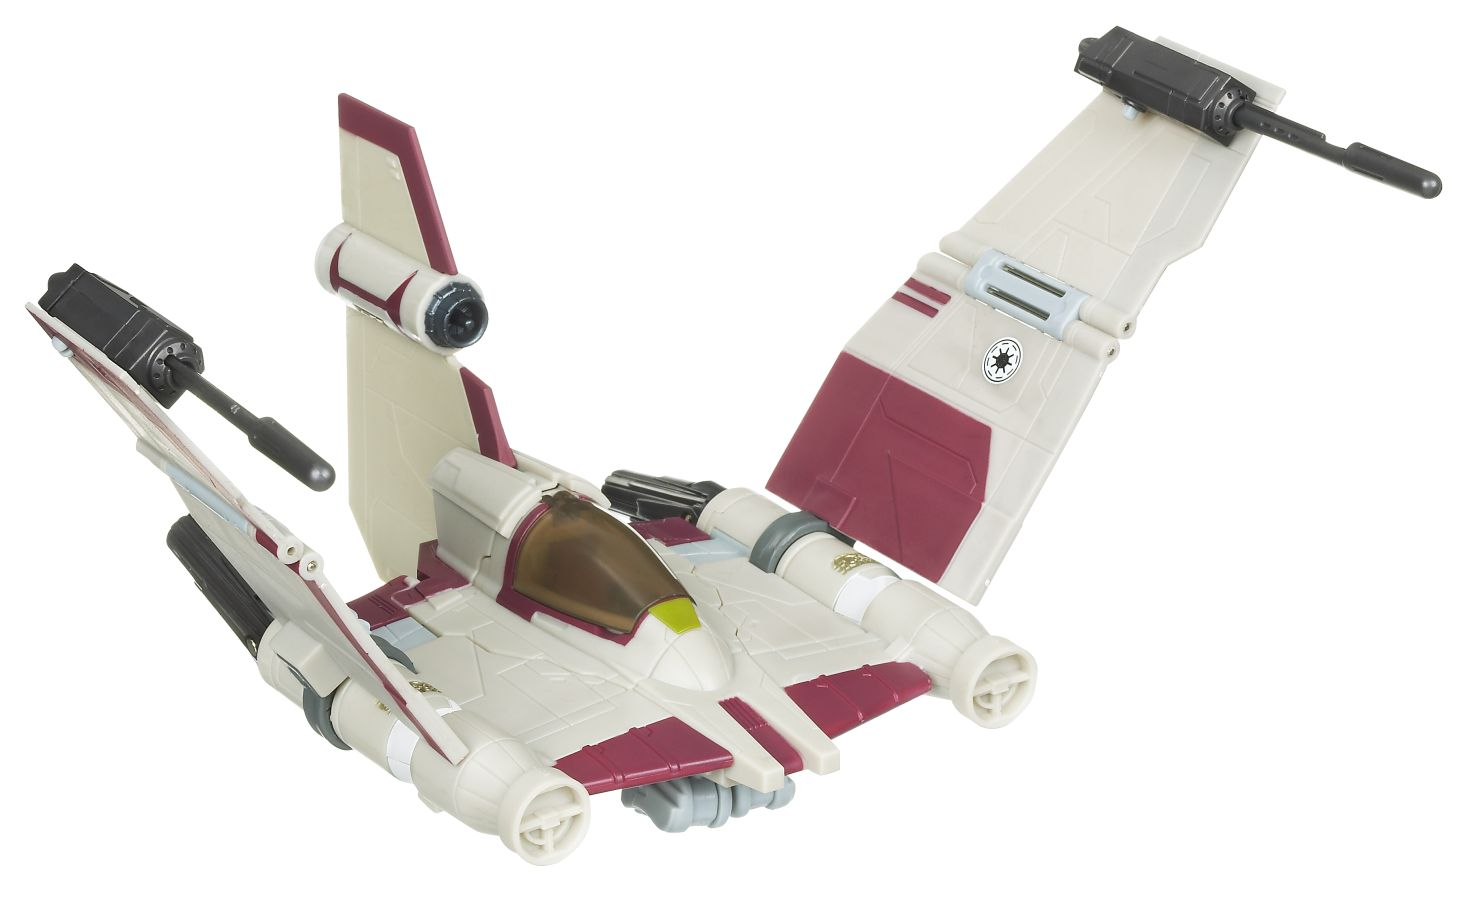 clone pilot v 19 torrent starfighter transformers crossovers tfw2005. Black Bedroom Furniture Sets. Home Design Ideas